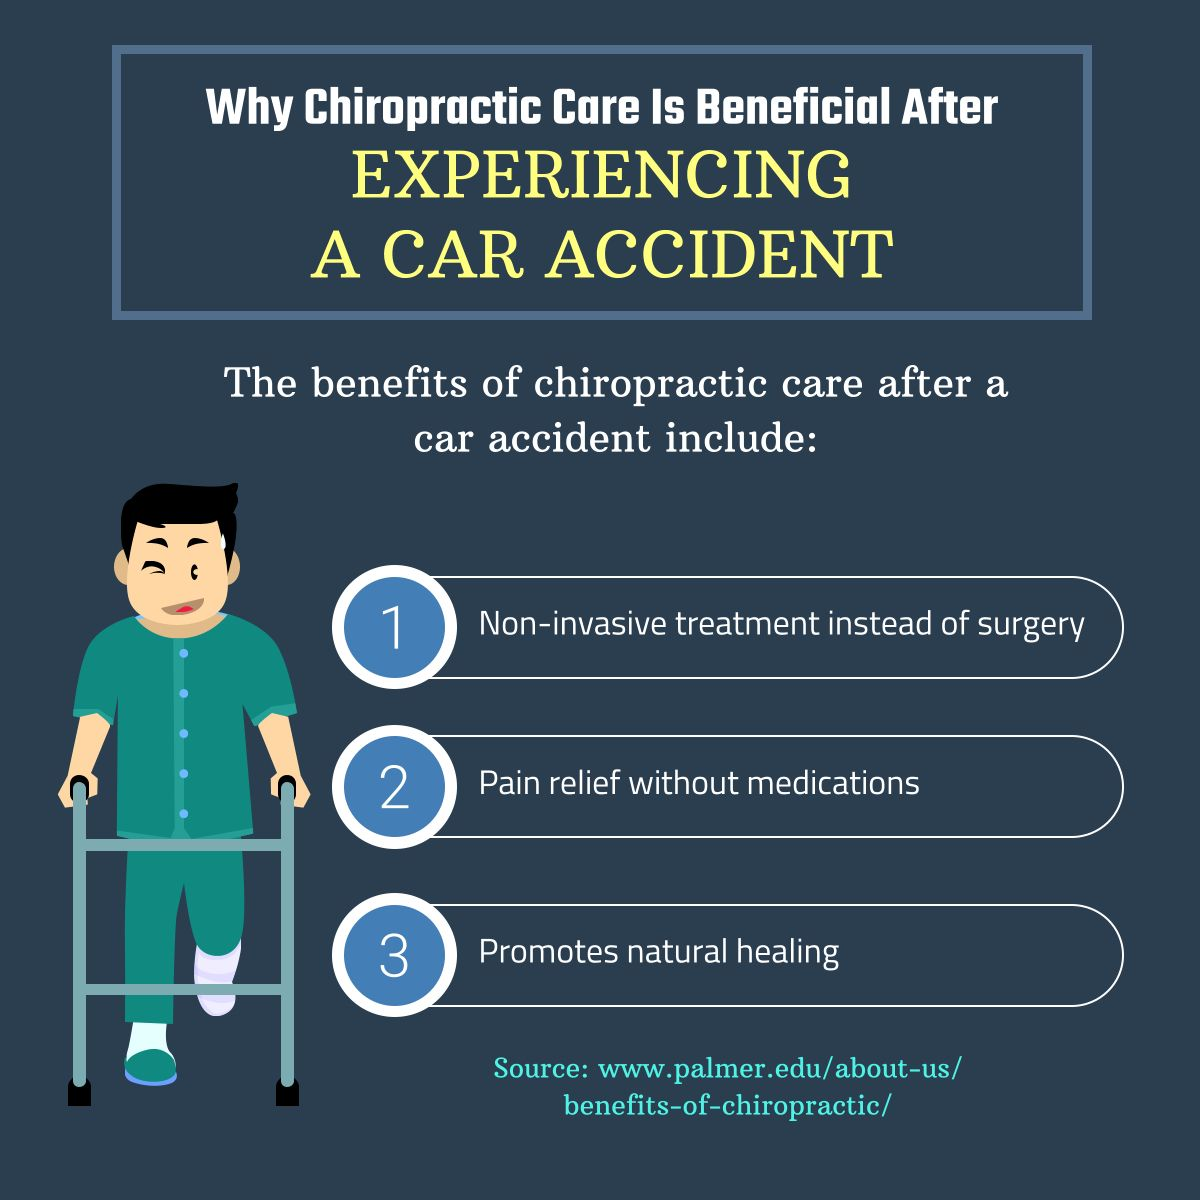 Pin on Chiropractic ideas